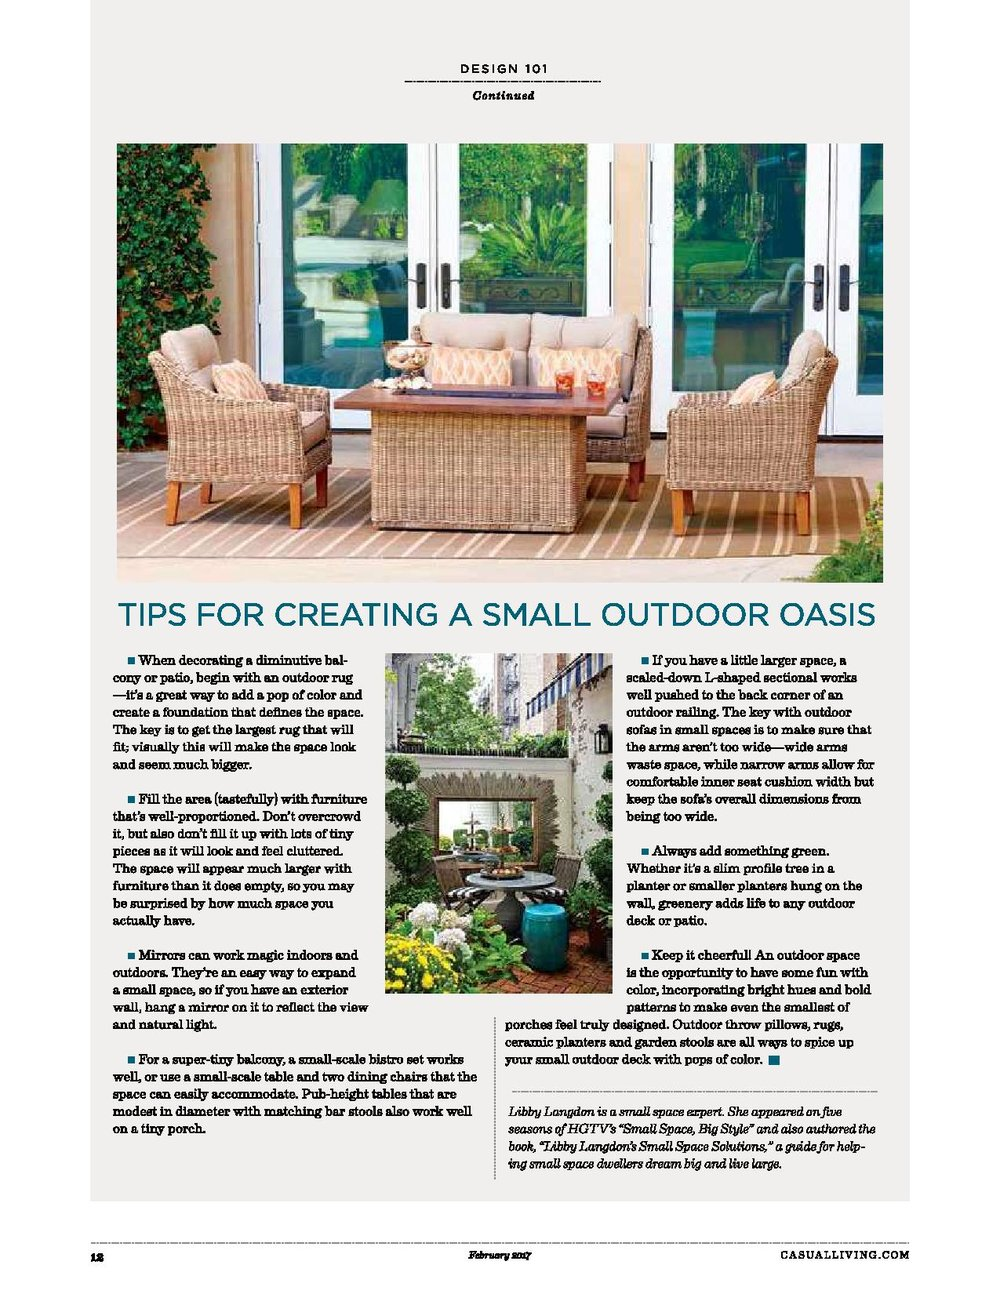 How To Build A Fabulous Outdoor Room With Less Libby Langdon